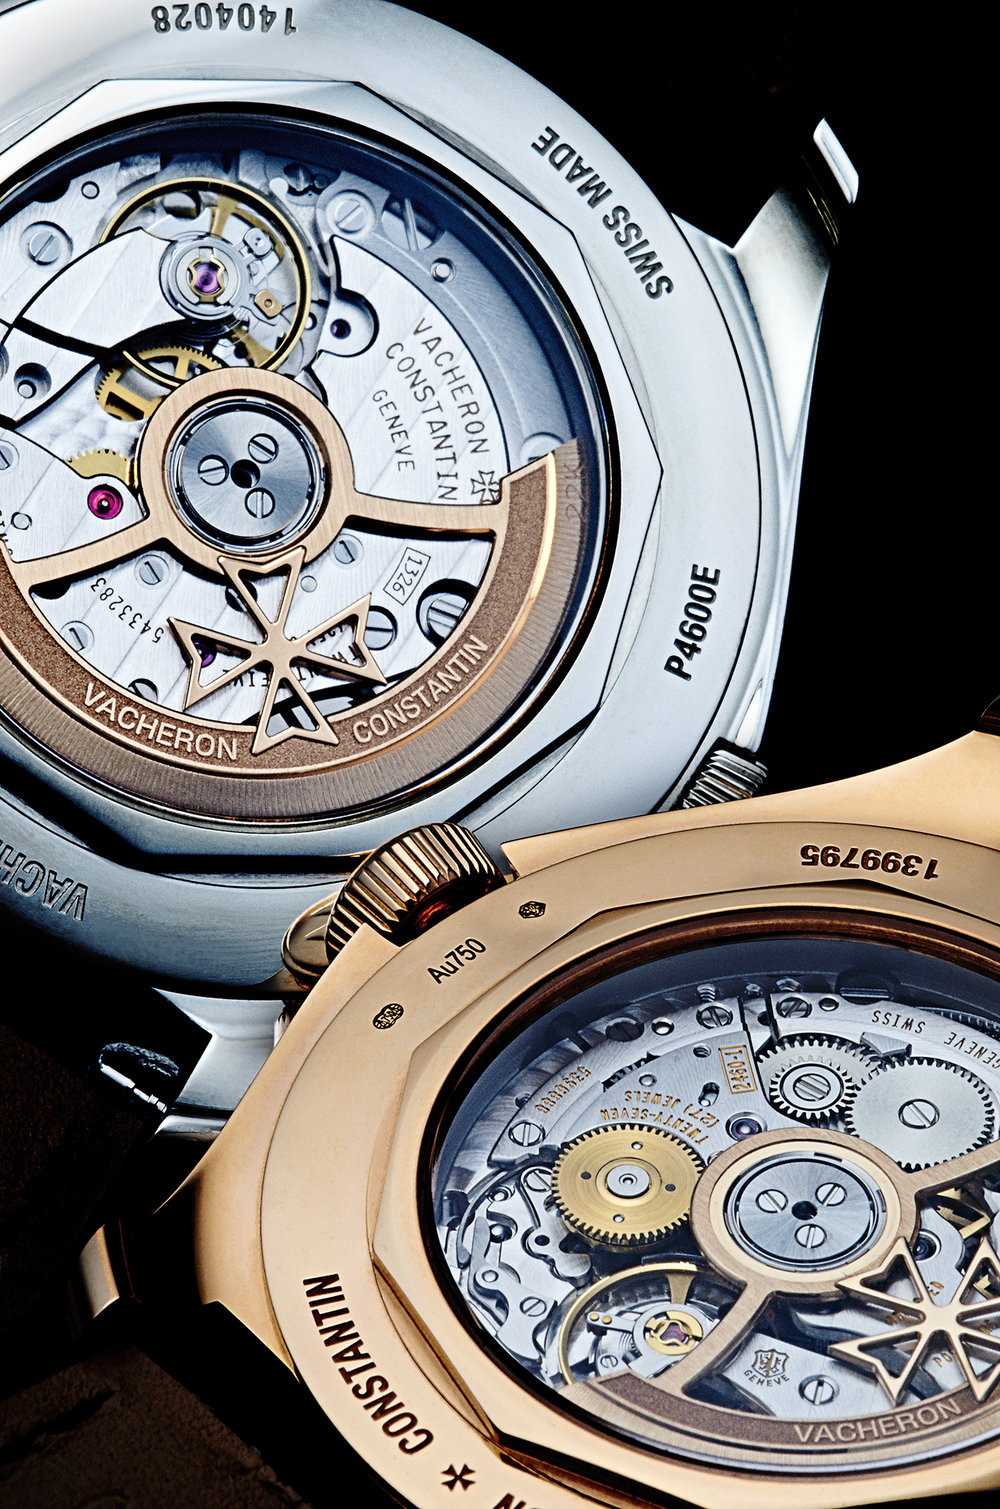 Vacheron Constantin_2 WATCHES.jpg